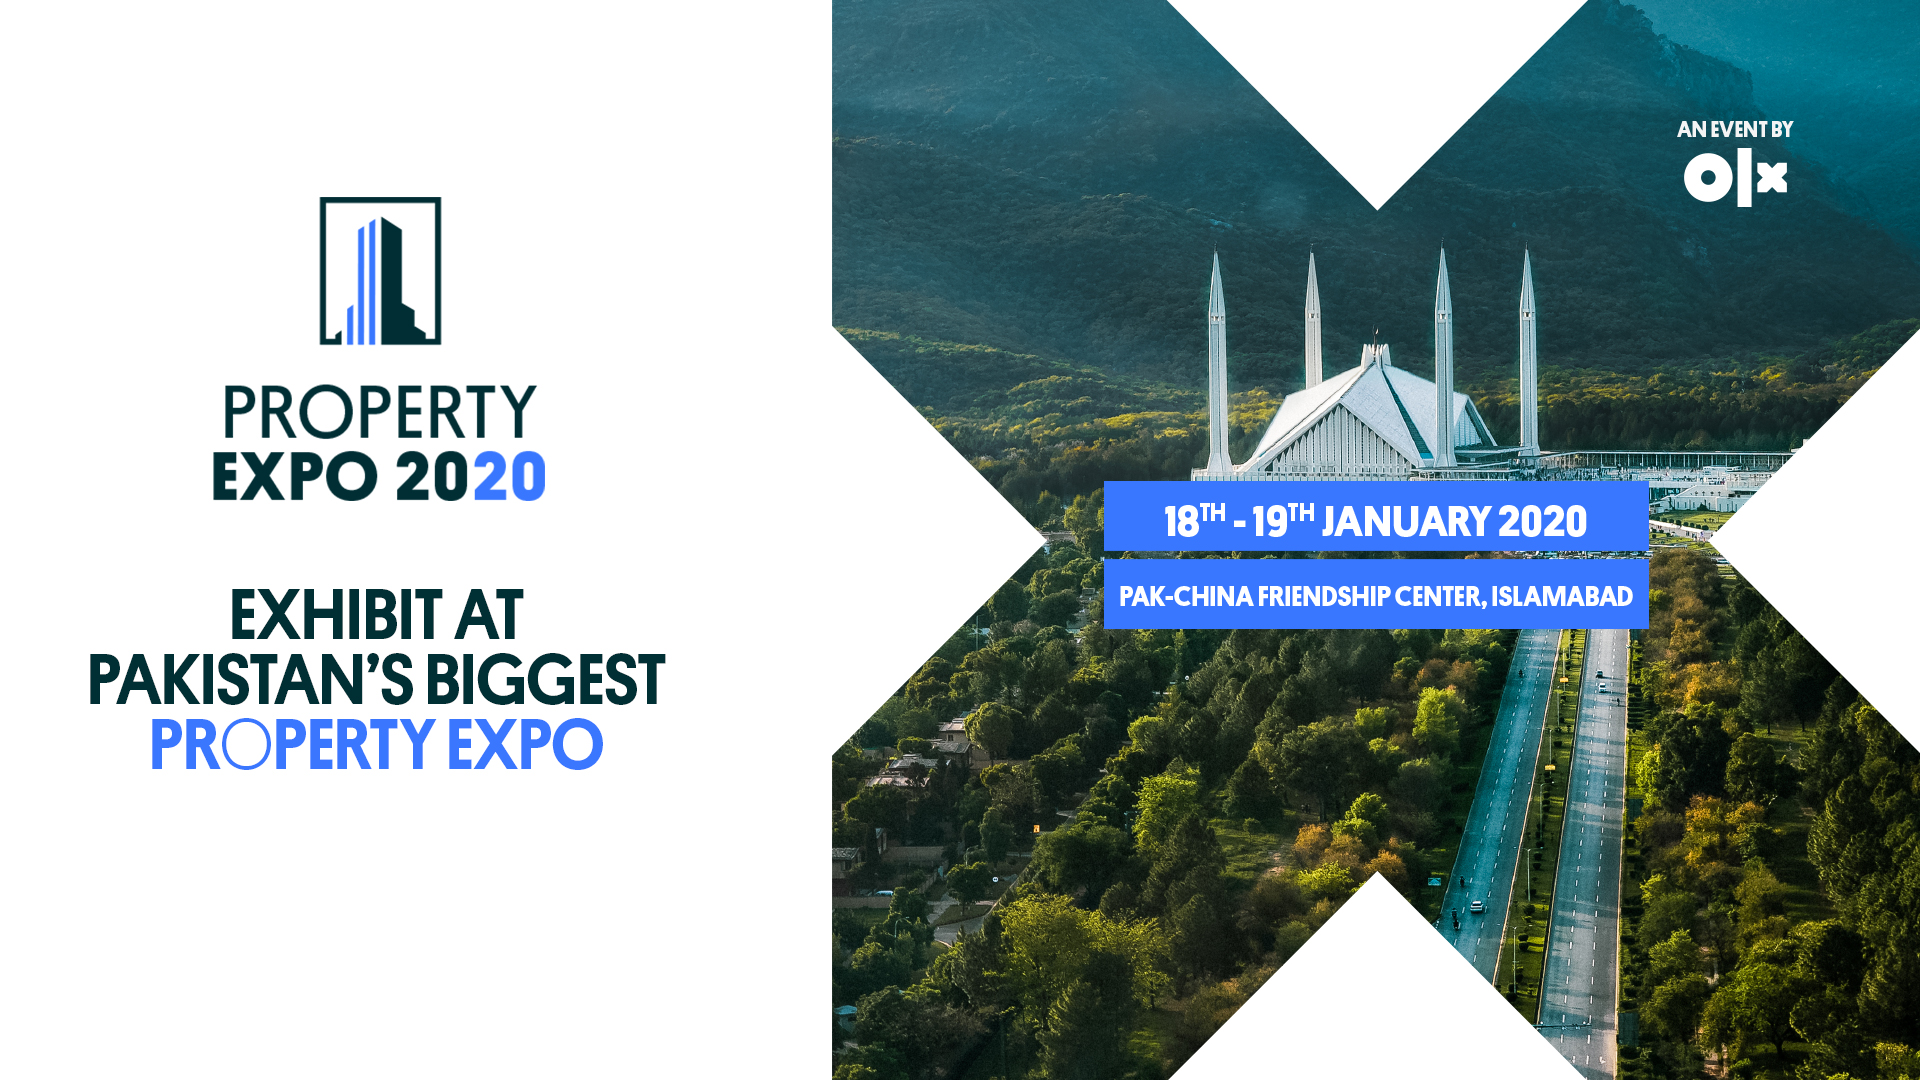 OLX SET TO ORGANIZE PAKISTAN'S LARGEST PROPERTY EXPO in 2020